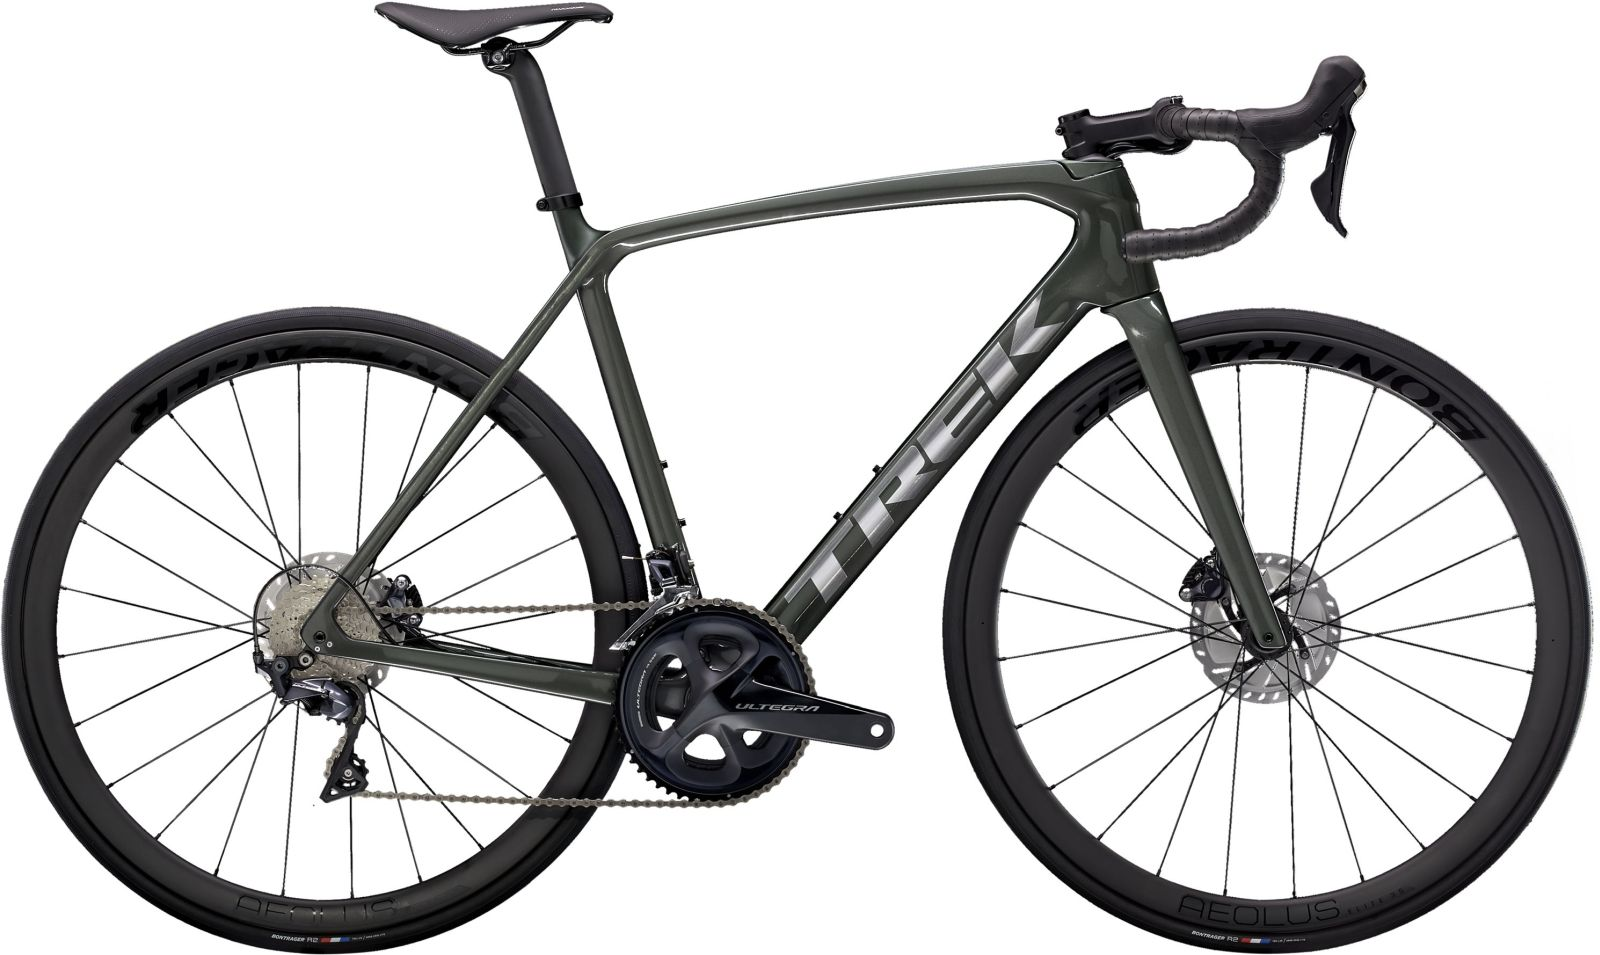 Trek Emonda SL 6 Disc Pro - Lithium Grey/Brushed Chrome 56